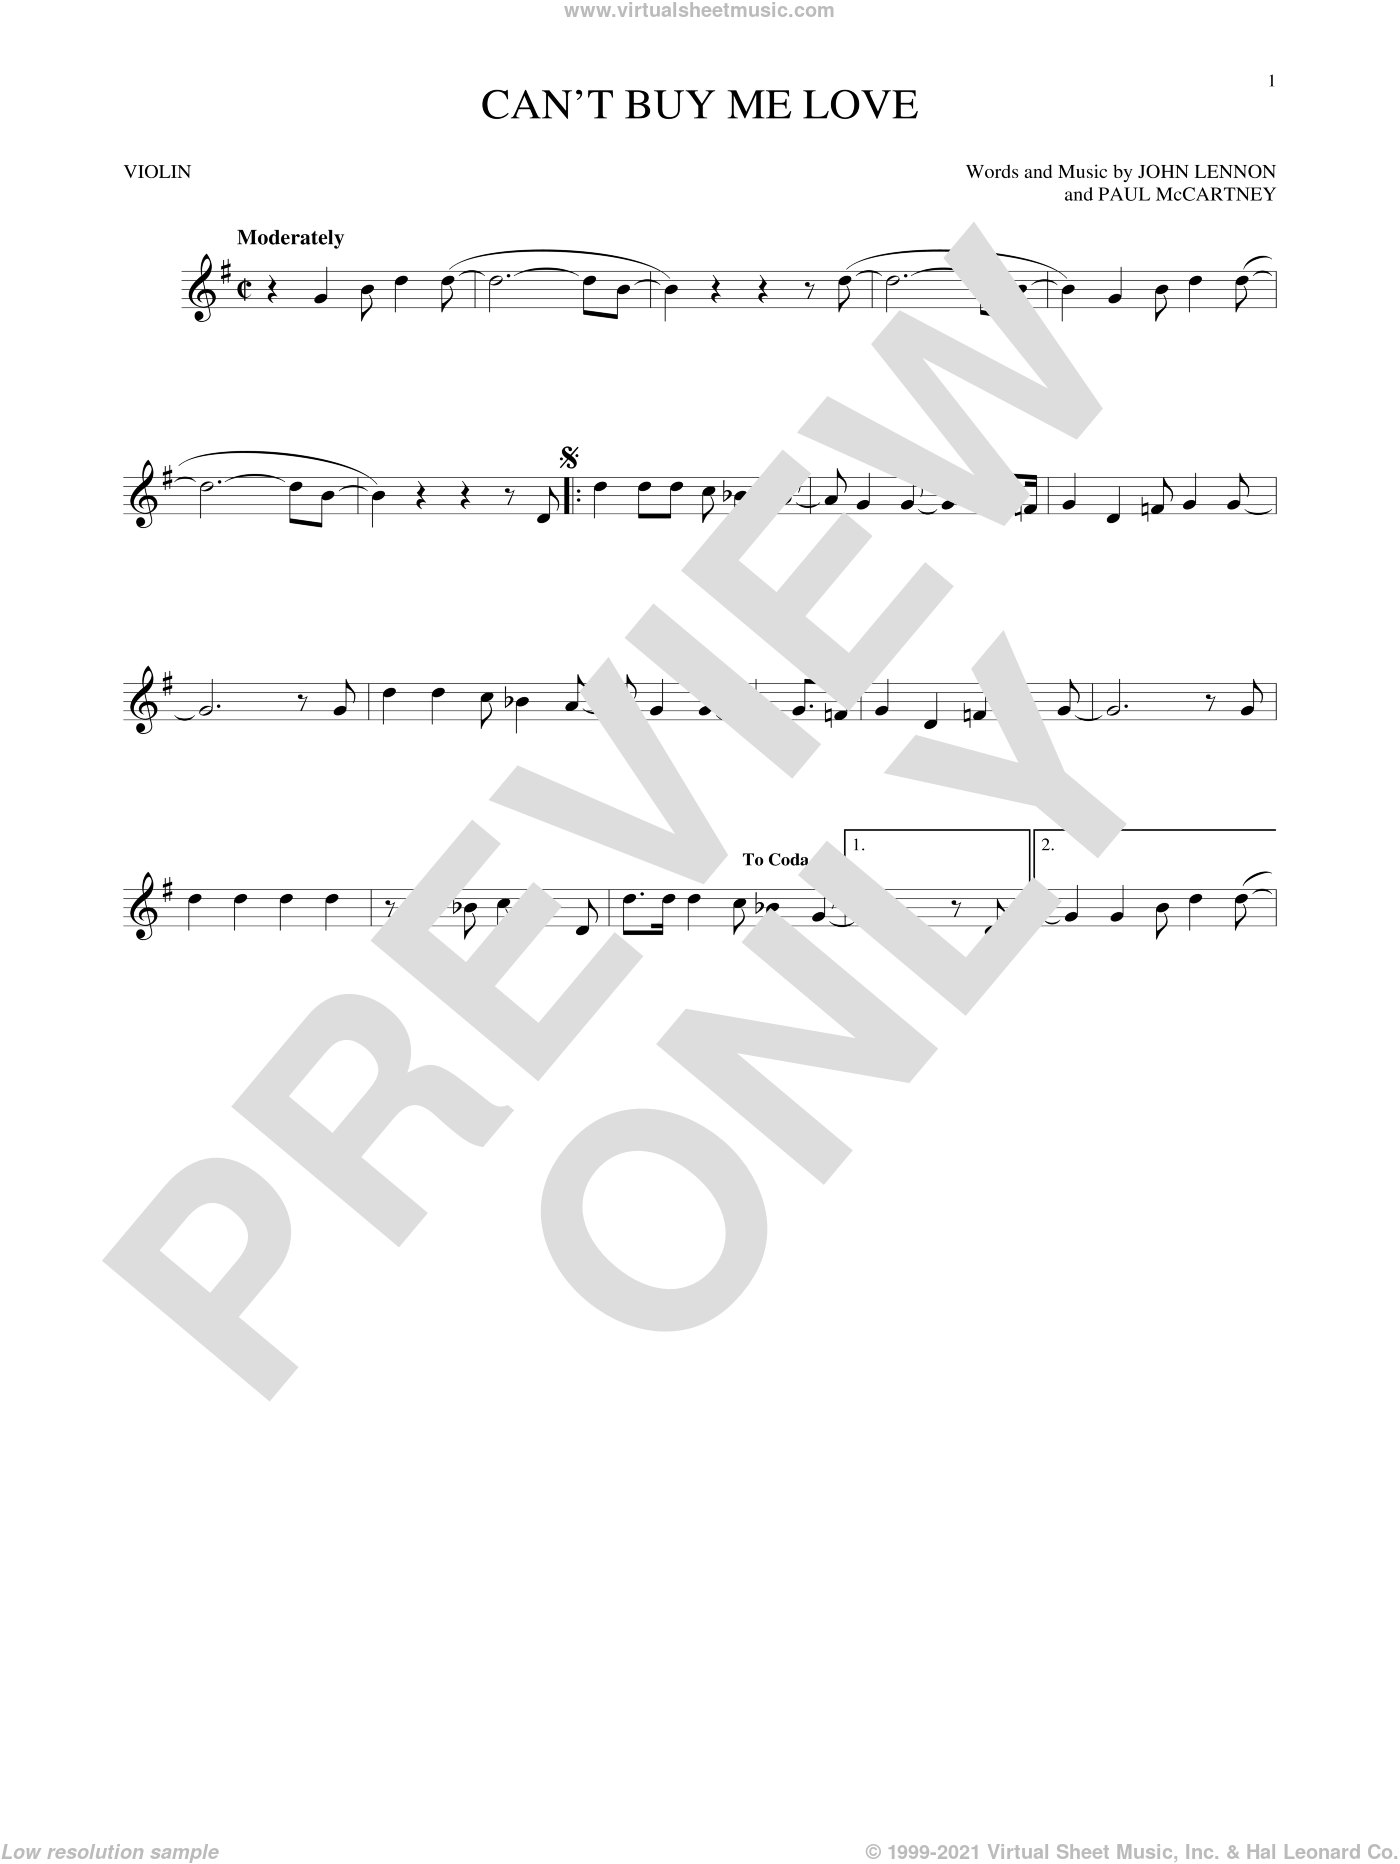 Can't Buy Me Love sheet music for violin solo by The Beatles, John Lennon and Paul McCartney, intermediate skill level